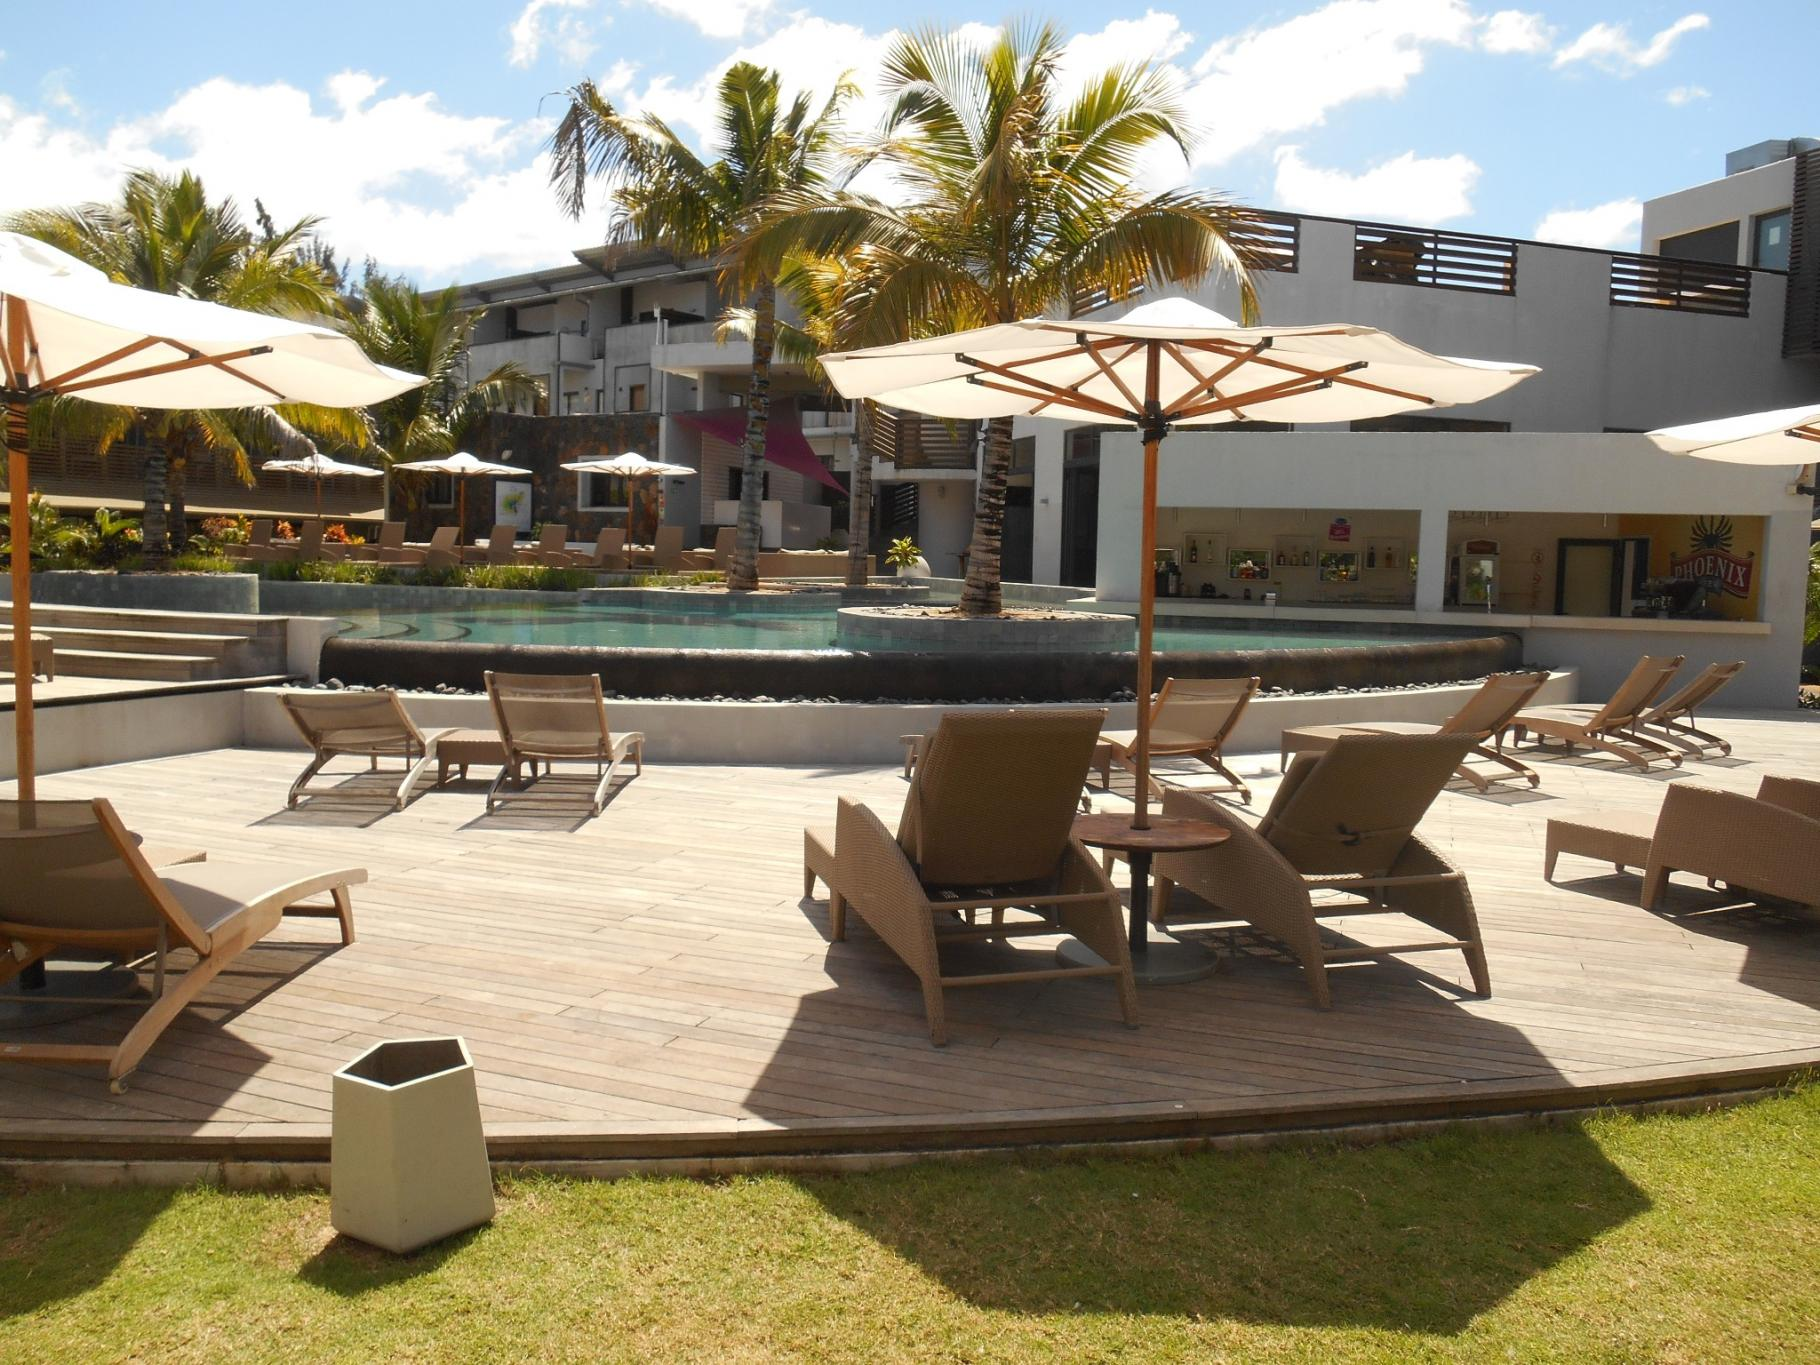 FOR SALE – Beautiful furnished and equipped apartment of 78 m2 at BeCosy Hotel in Trou aux Biches.